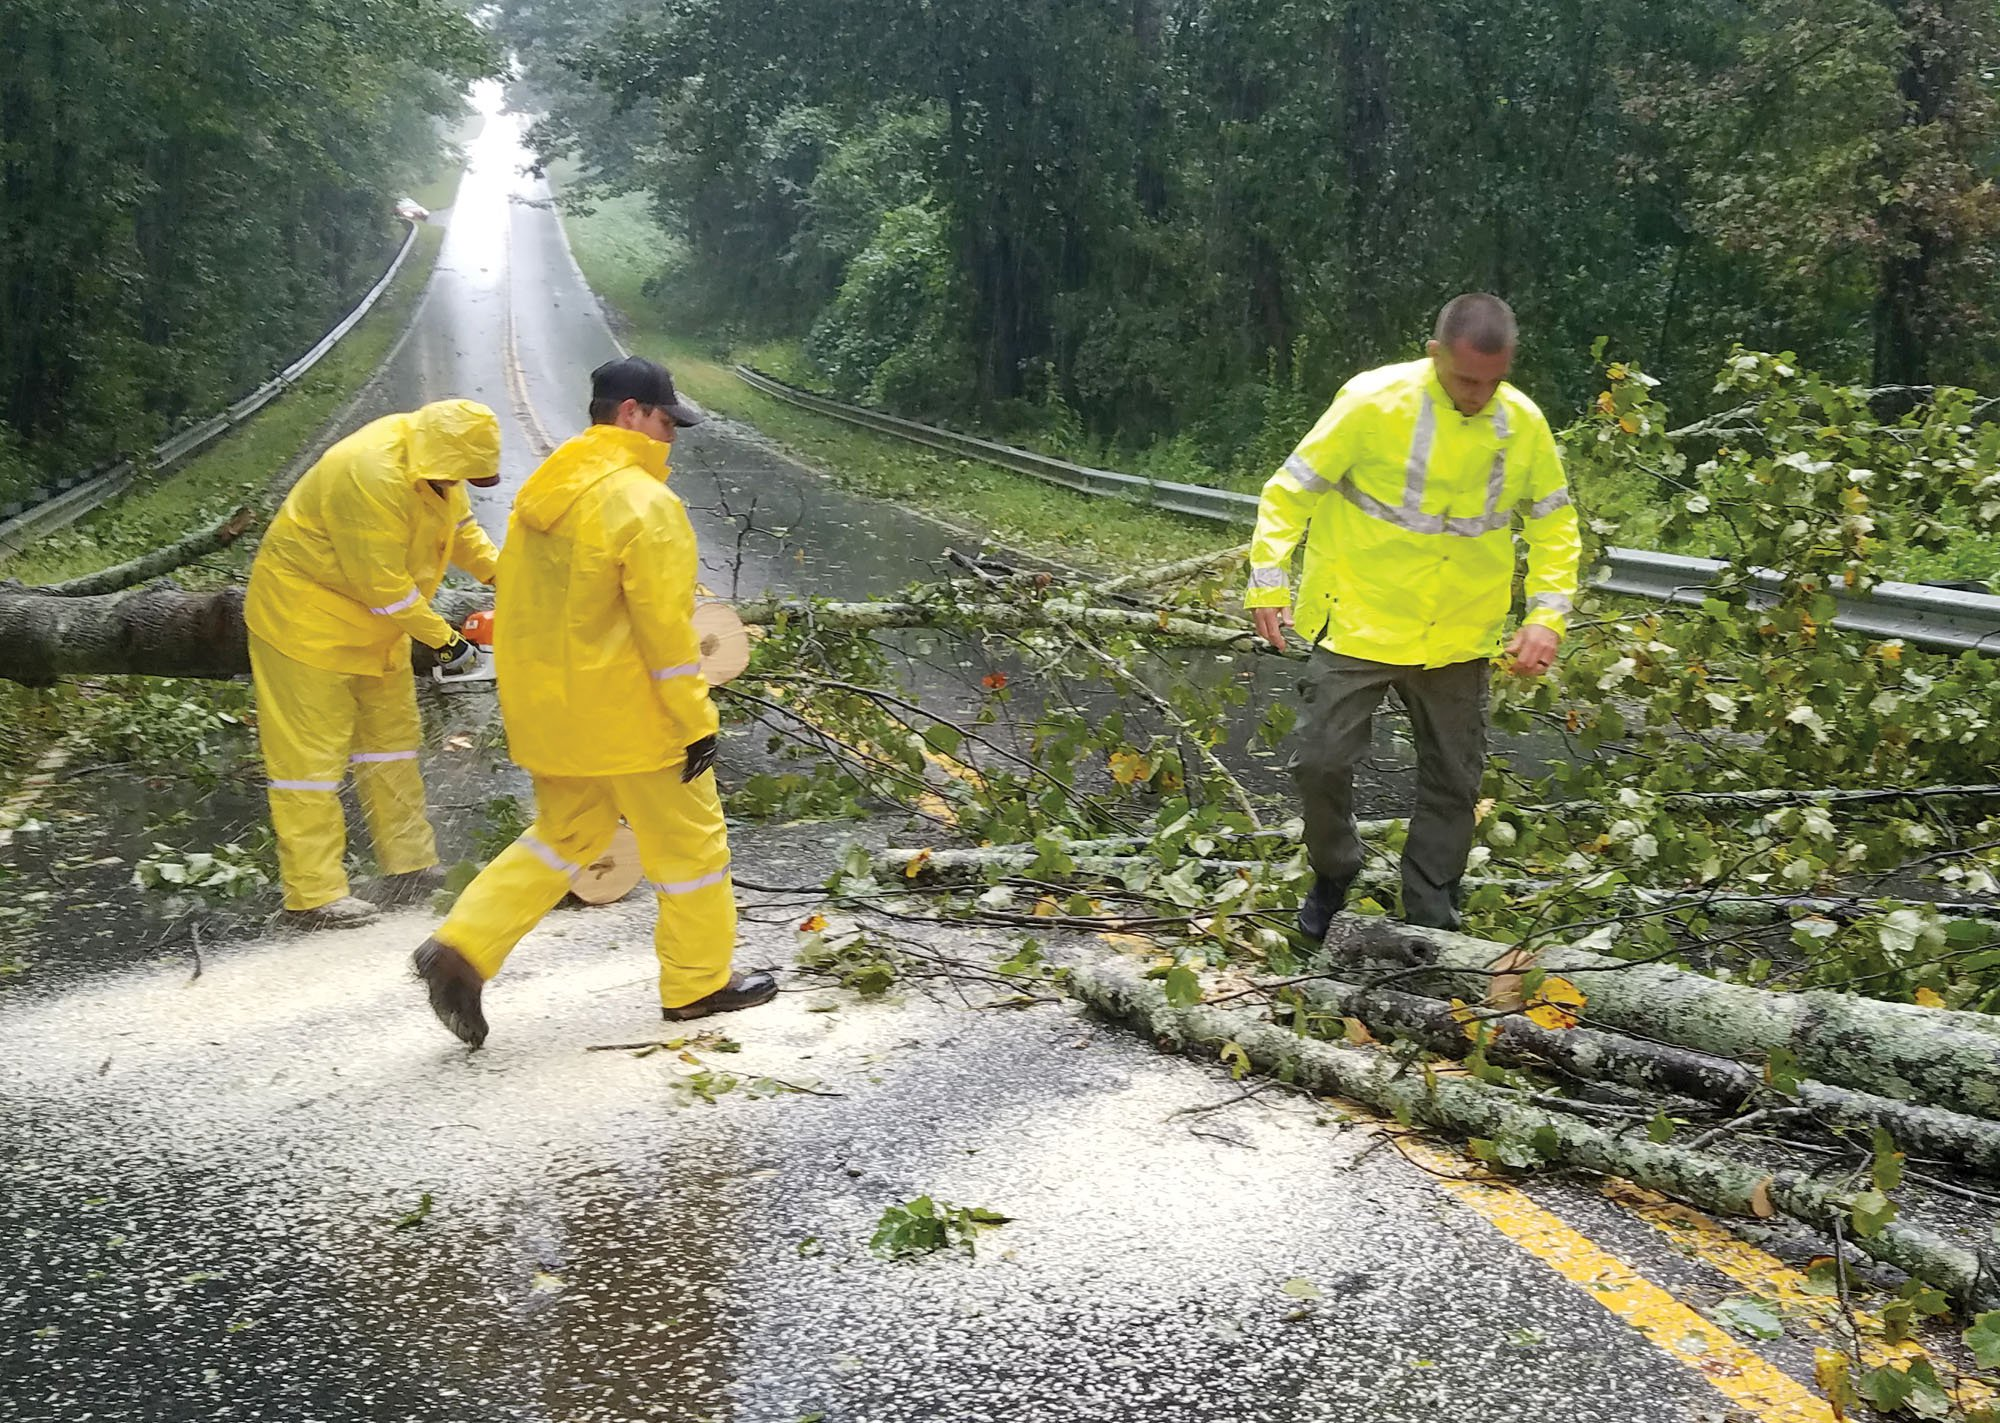 County employees worked together to clear the damage